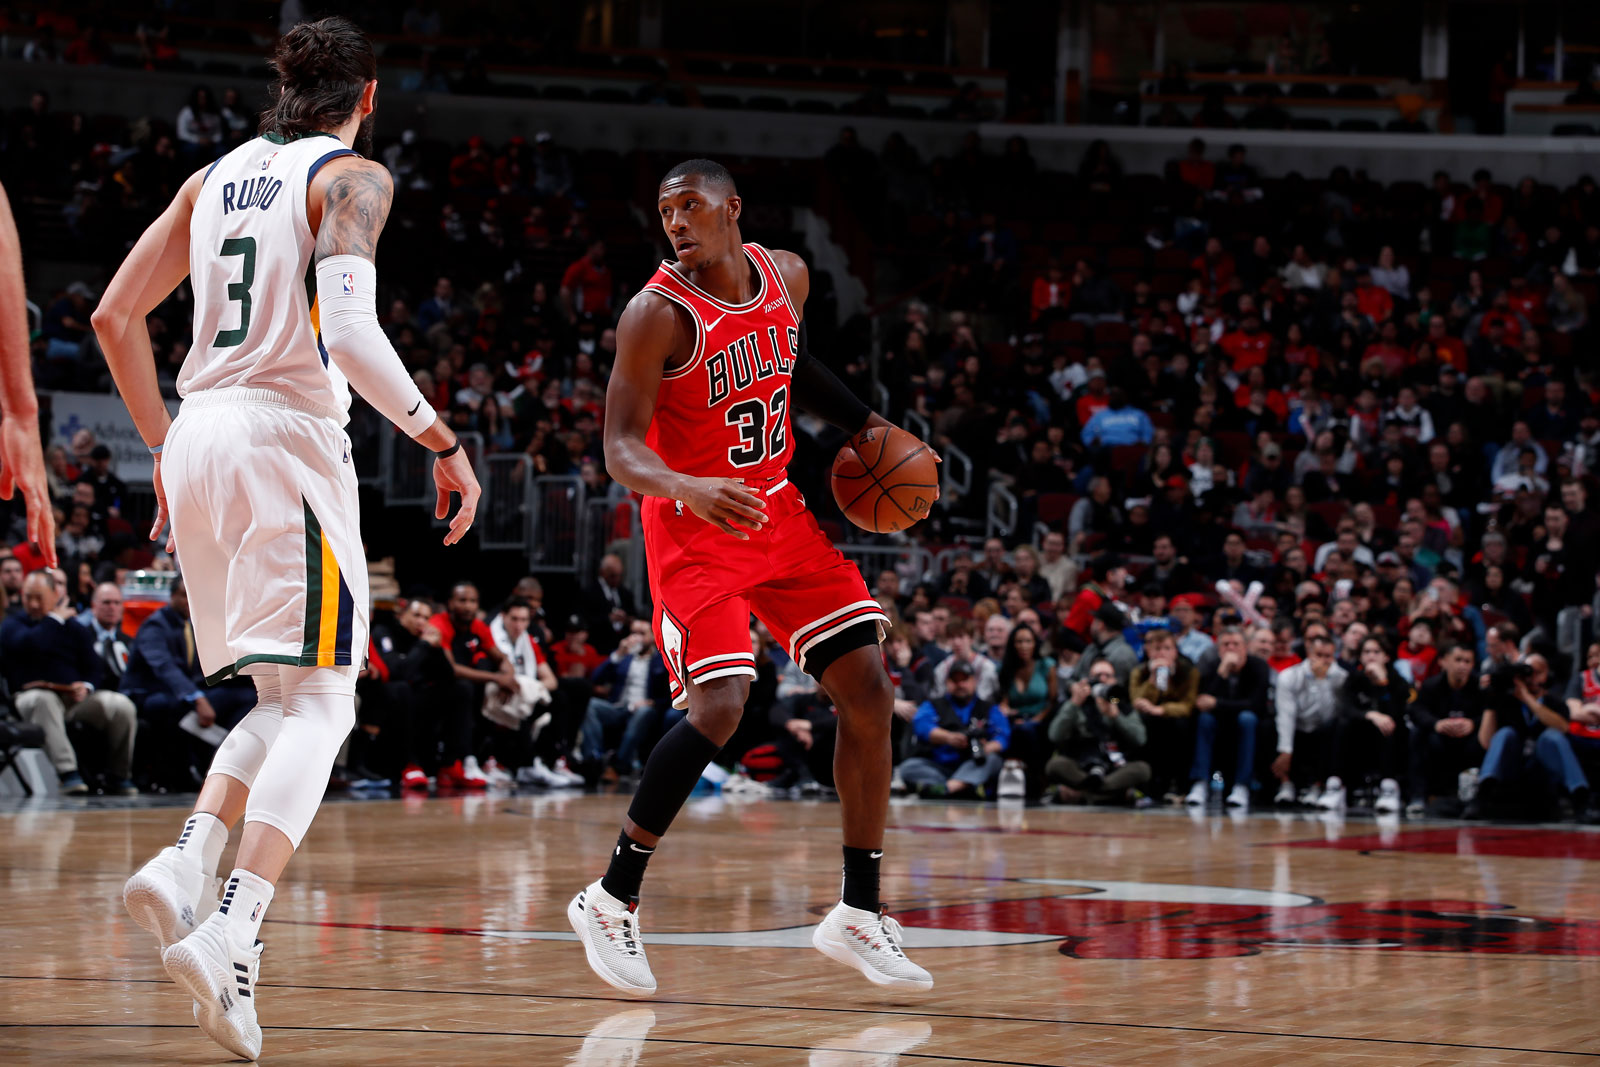 Kris Dunn #32 of the Chicago Bulls handles the ball against the Utah Jazz on March 23, 2019 at United Center in Chicago, Illinois.